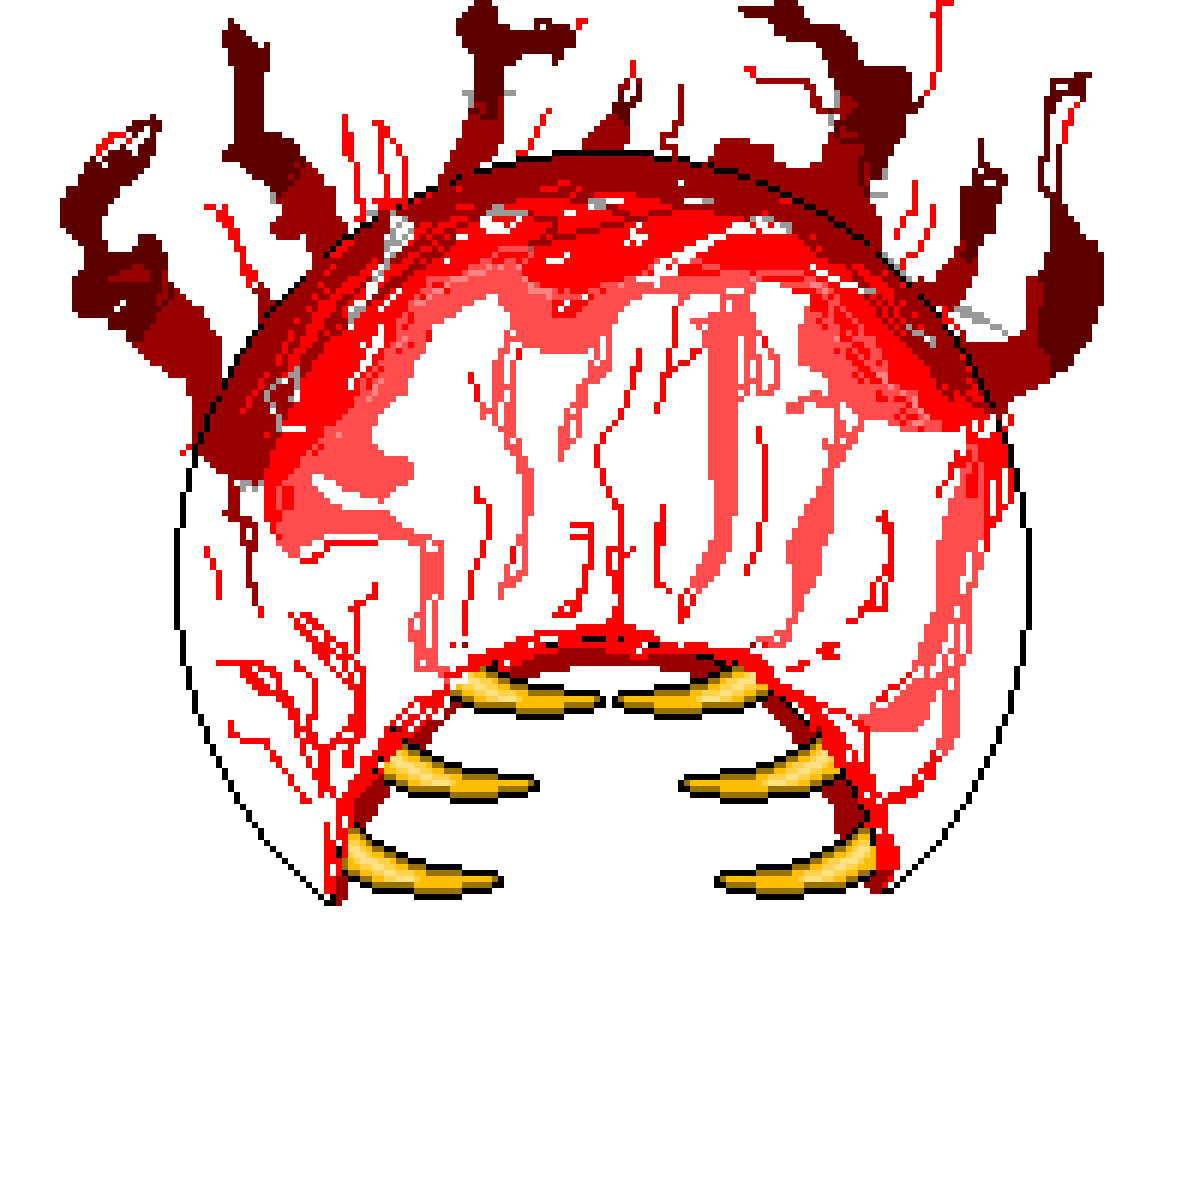 Terraria eye of cthulhu png. Pixilart the by dude